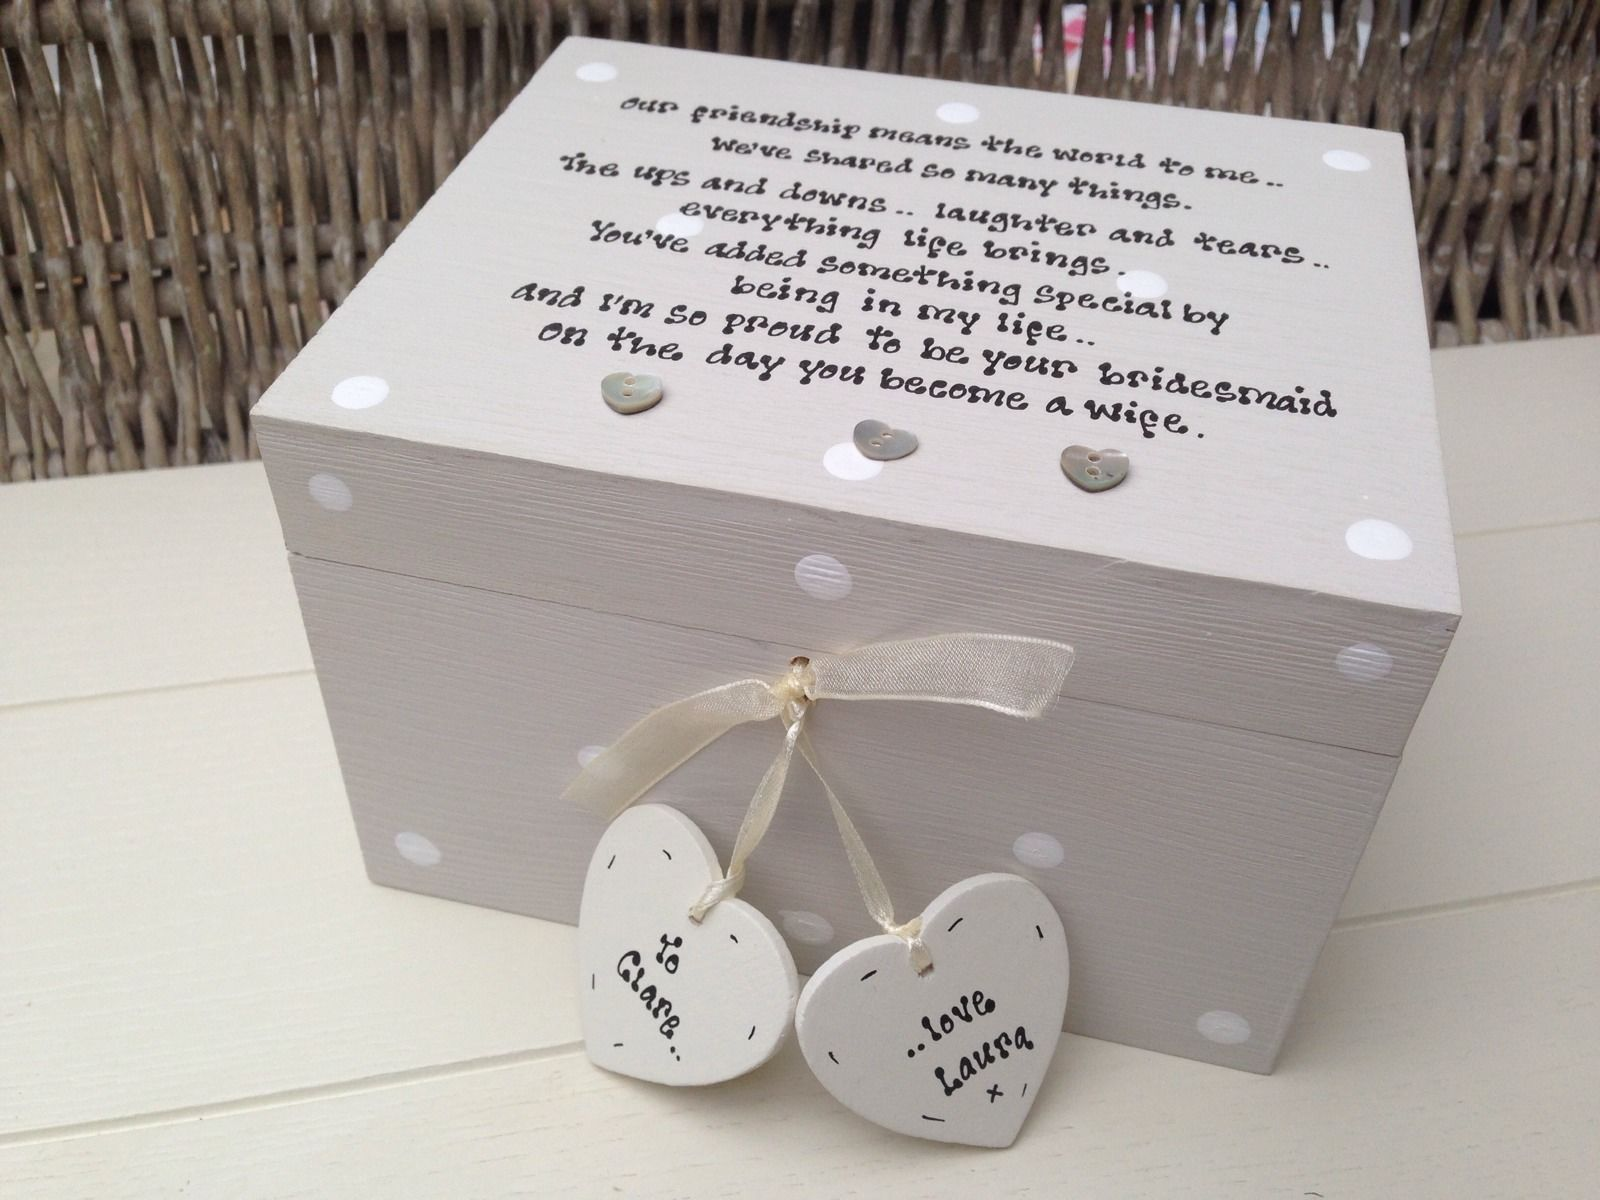 ... gift-for-bride-from-bridesmaid-wedding-trinket-gift-box-[3]-12965-p